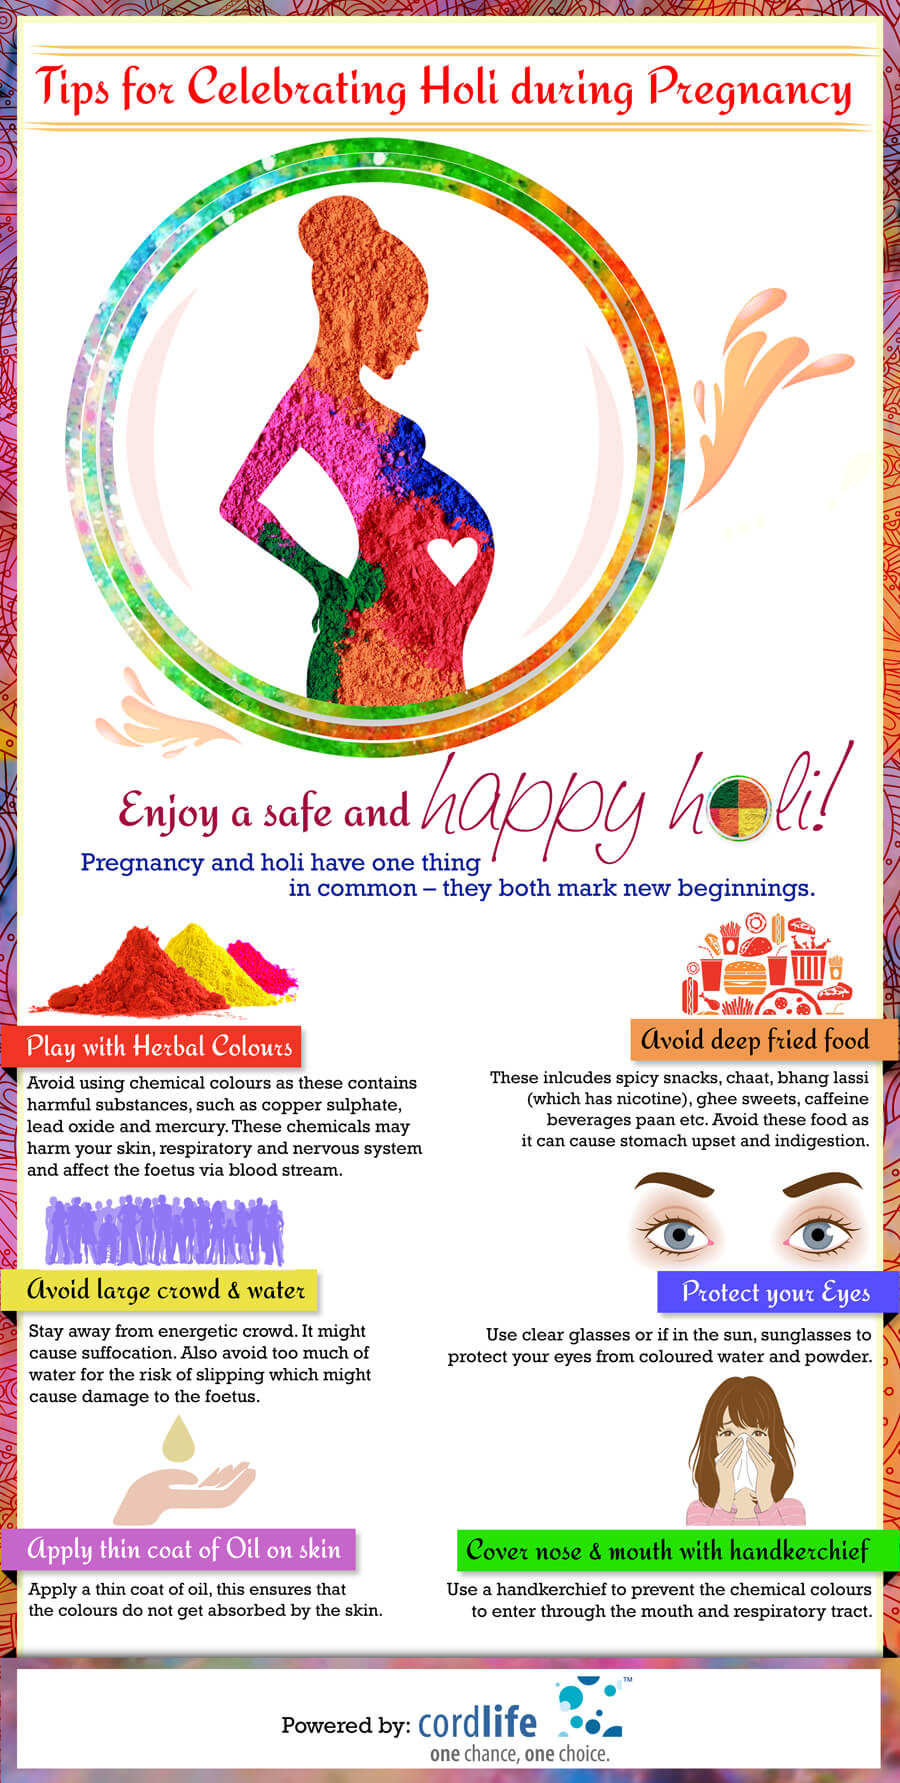 Tips for pregnant woman on Holi